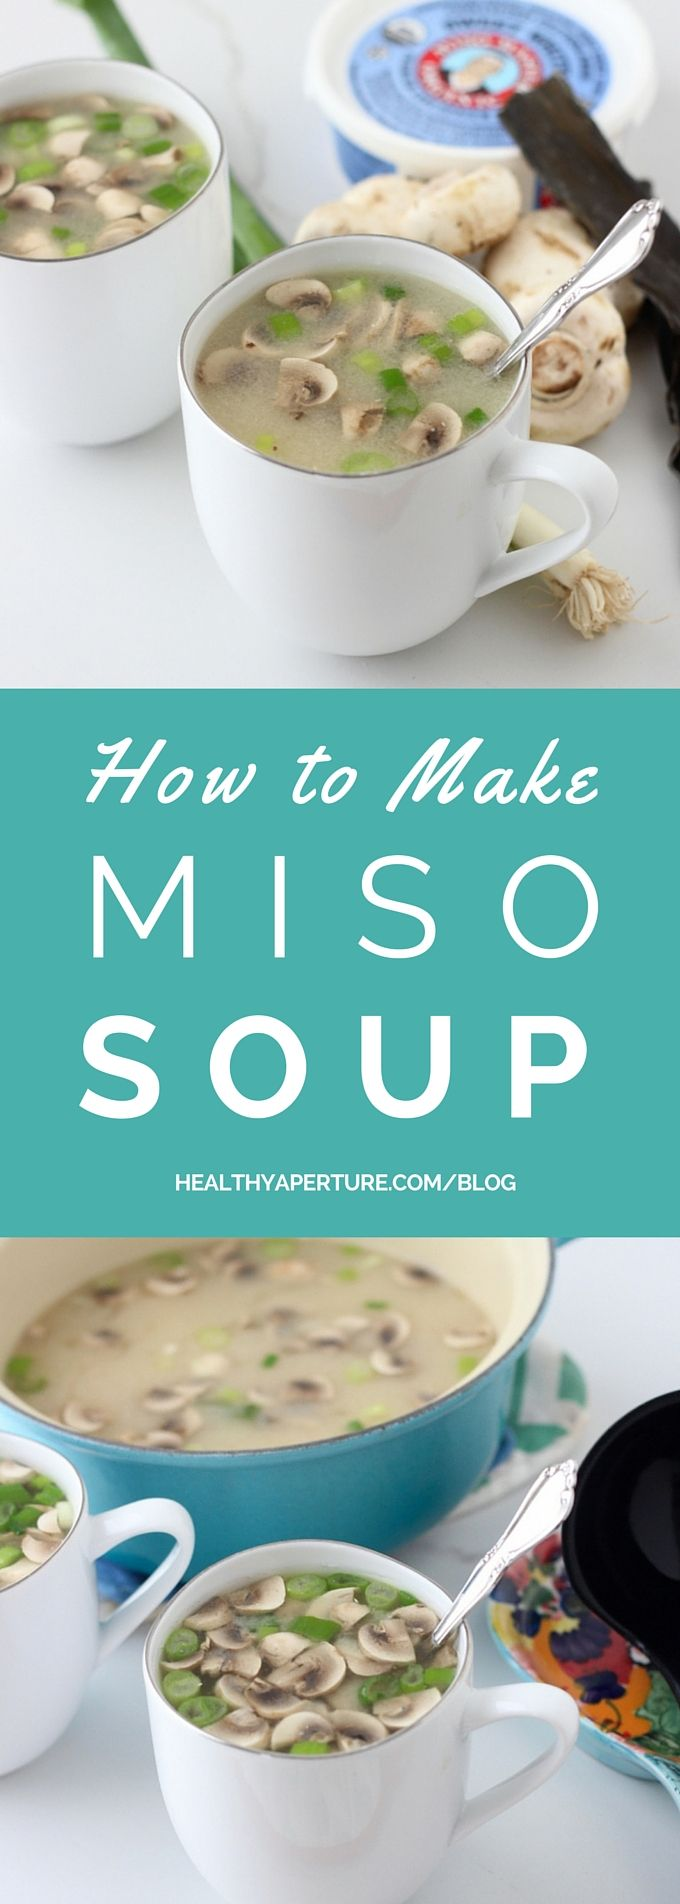 No more wasting food! Miso soup is a great way to prevent food waste plus add the benefits of fermented foods to your diet.